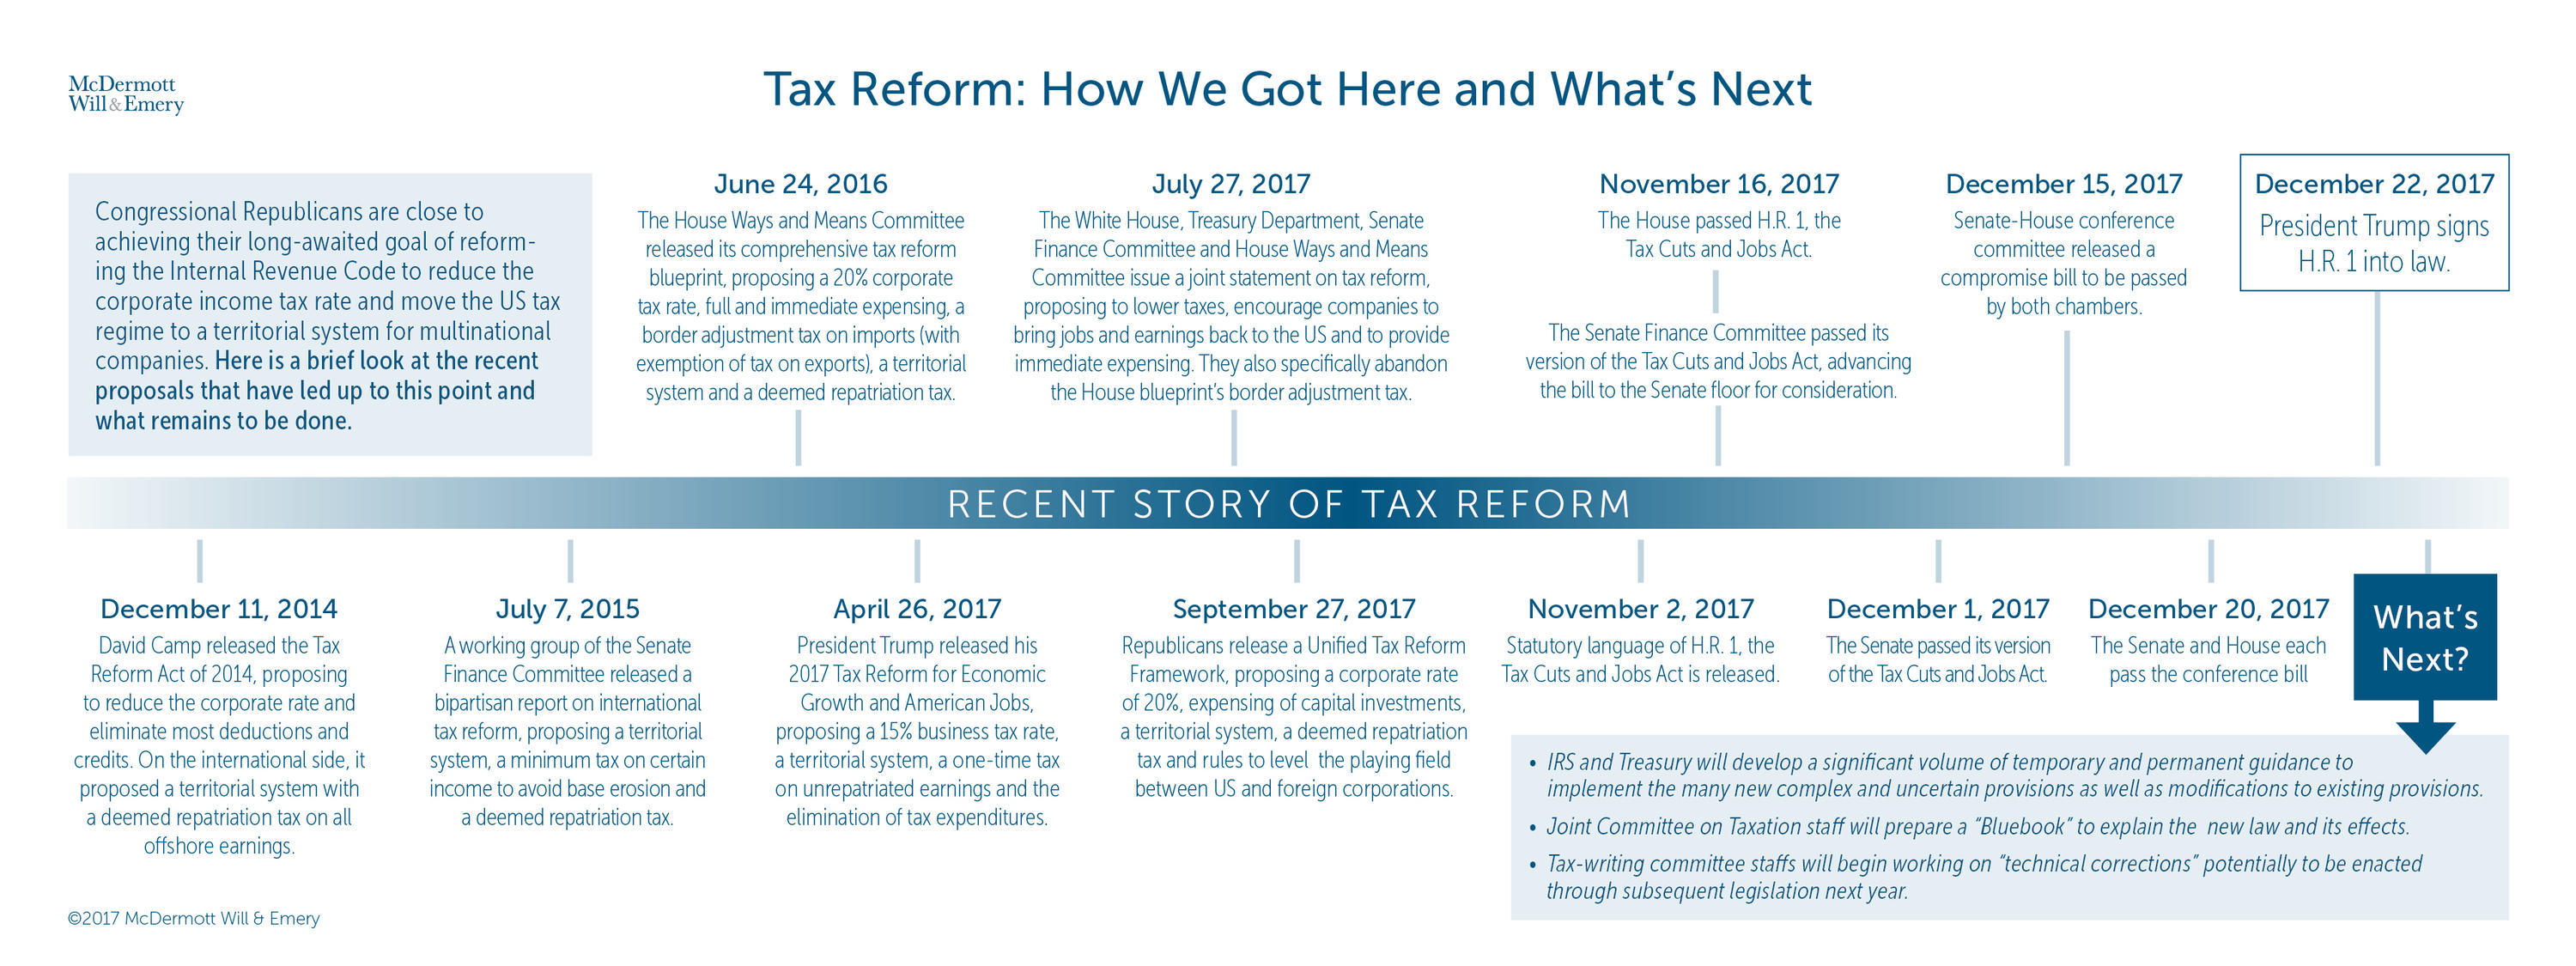 McDermott\u0027s Take On Tax Reform